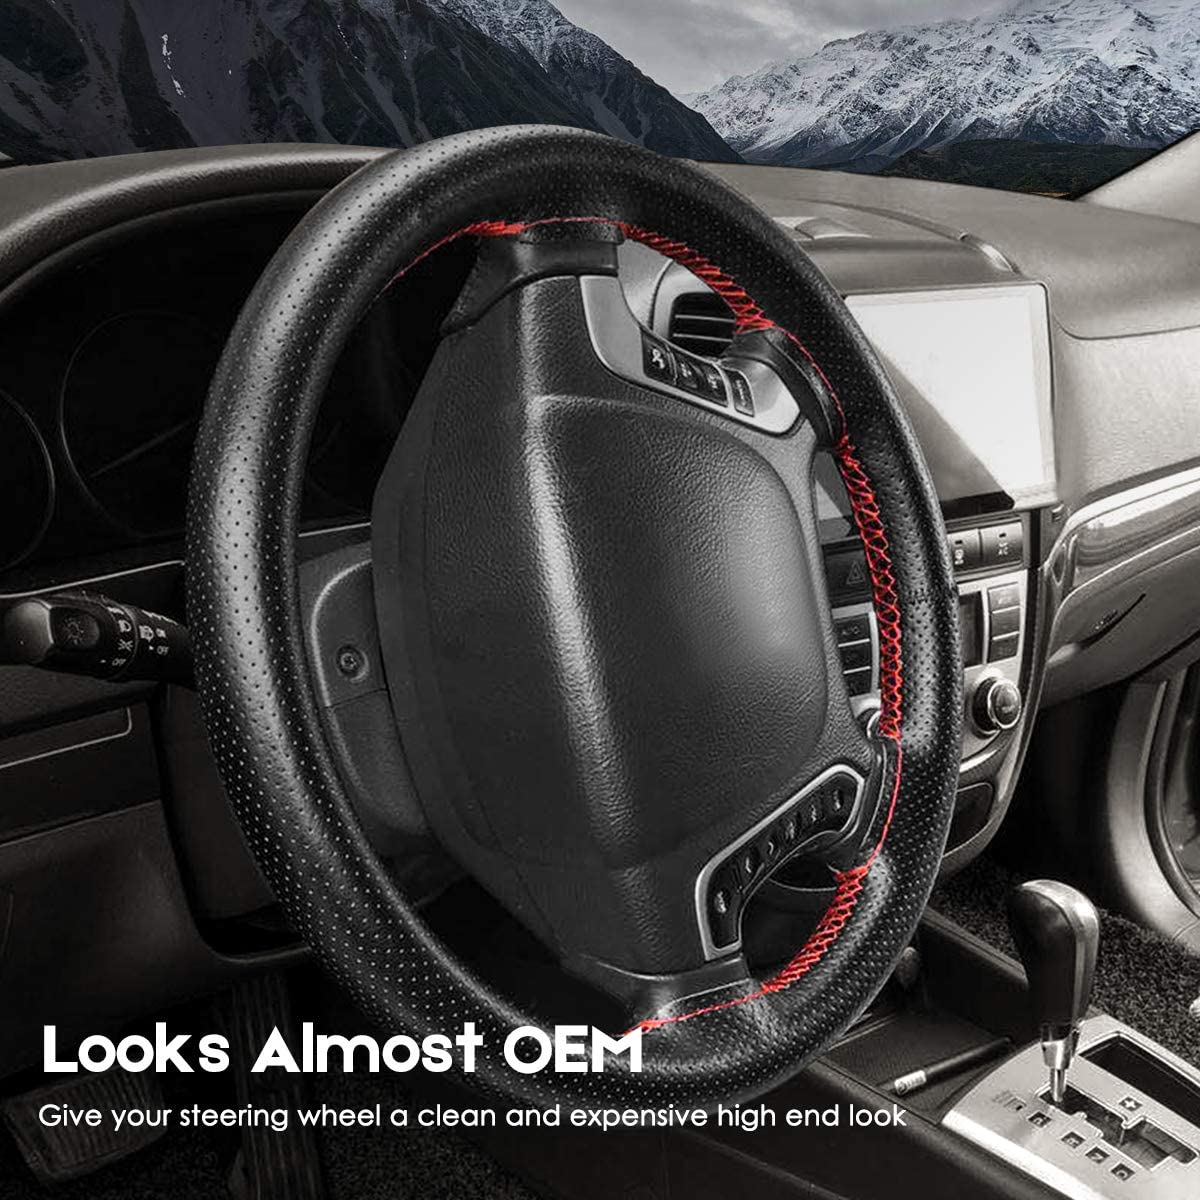 BELINOUS Universal Leather Car Steering Wheel Cover Stitch On Wrap Size L4, Black and Red